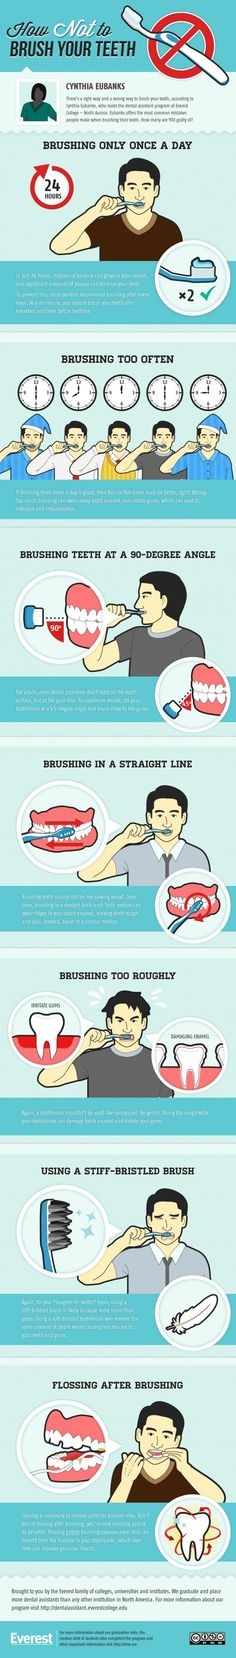 Tooth Brushing 101 - Simple, safe and easy guide that educates us about the dos and donts of excellent oral hygiene. Arm your brush and go.